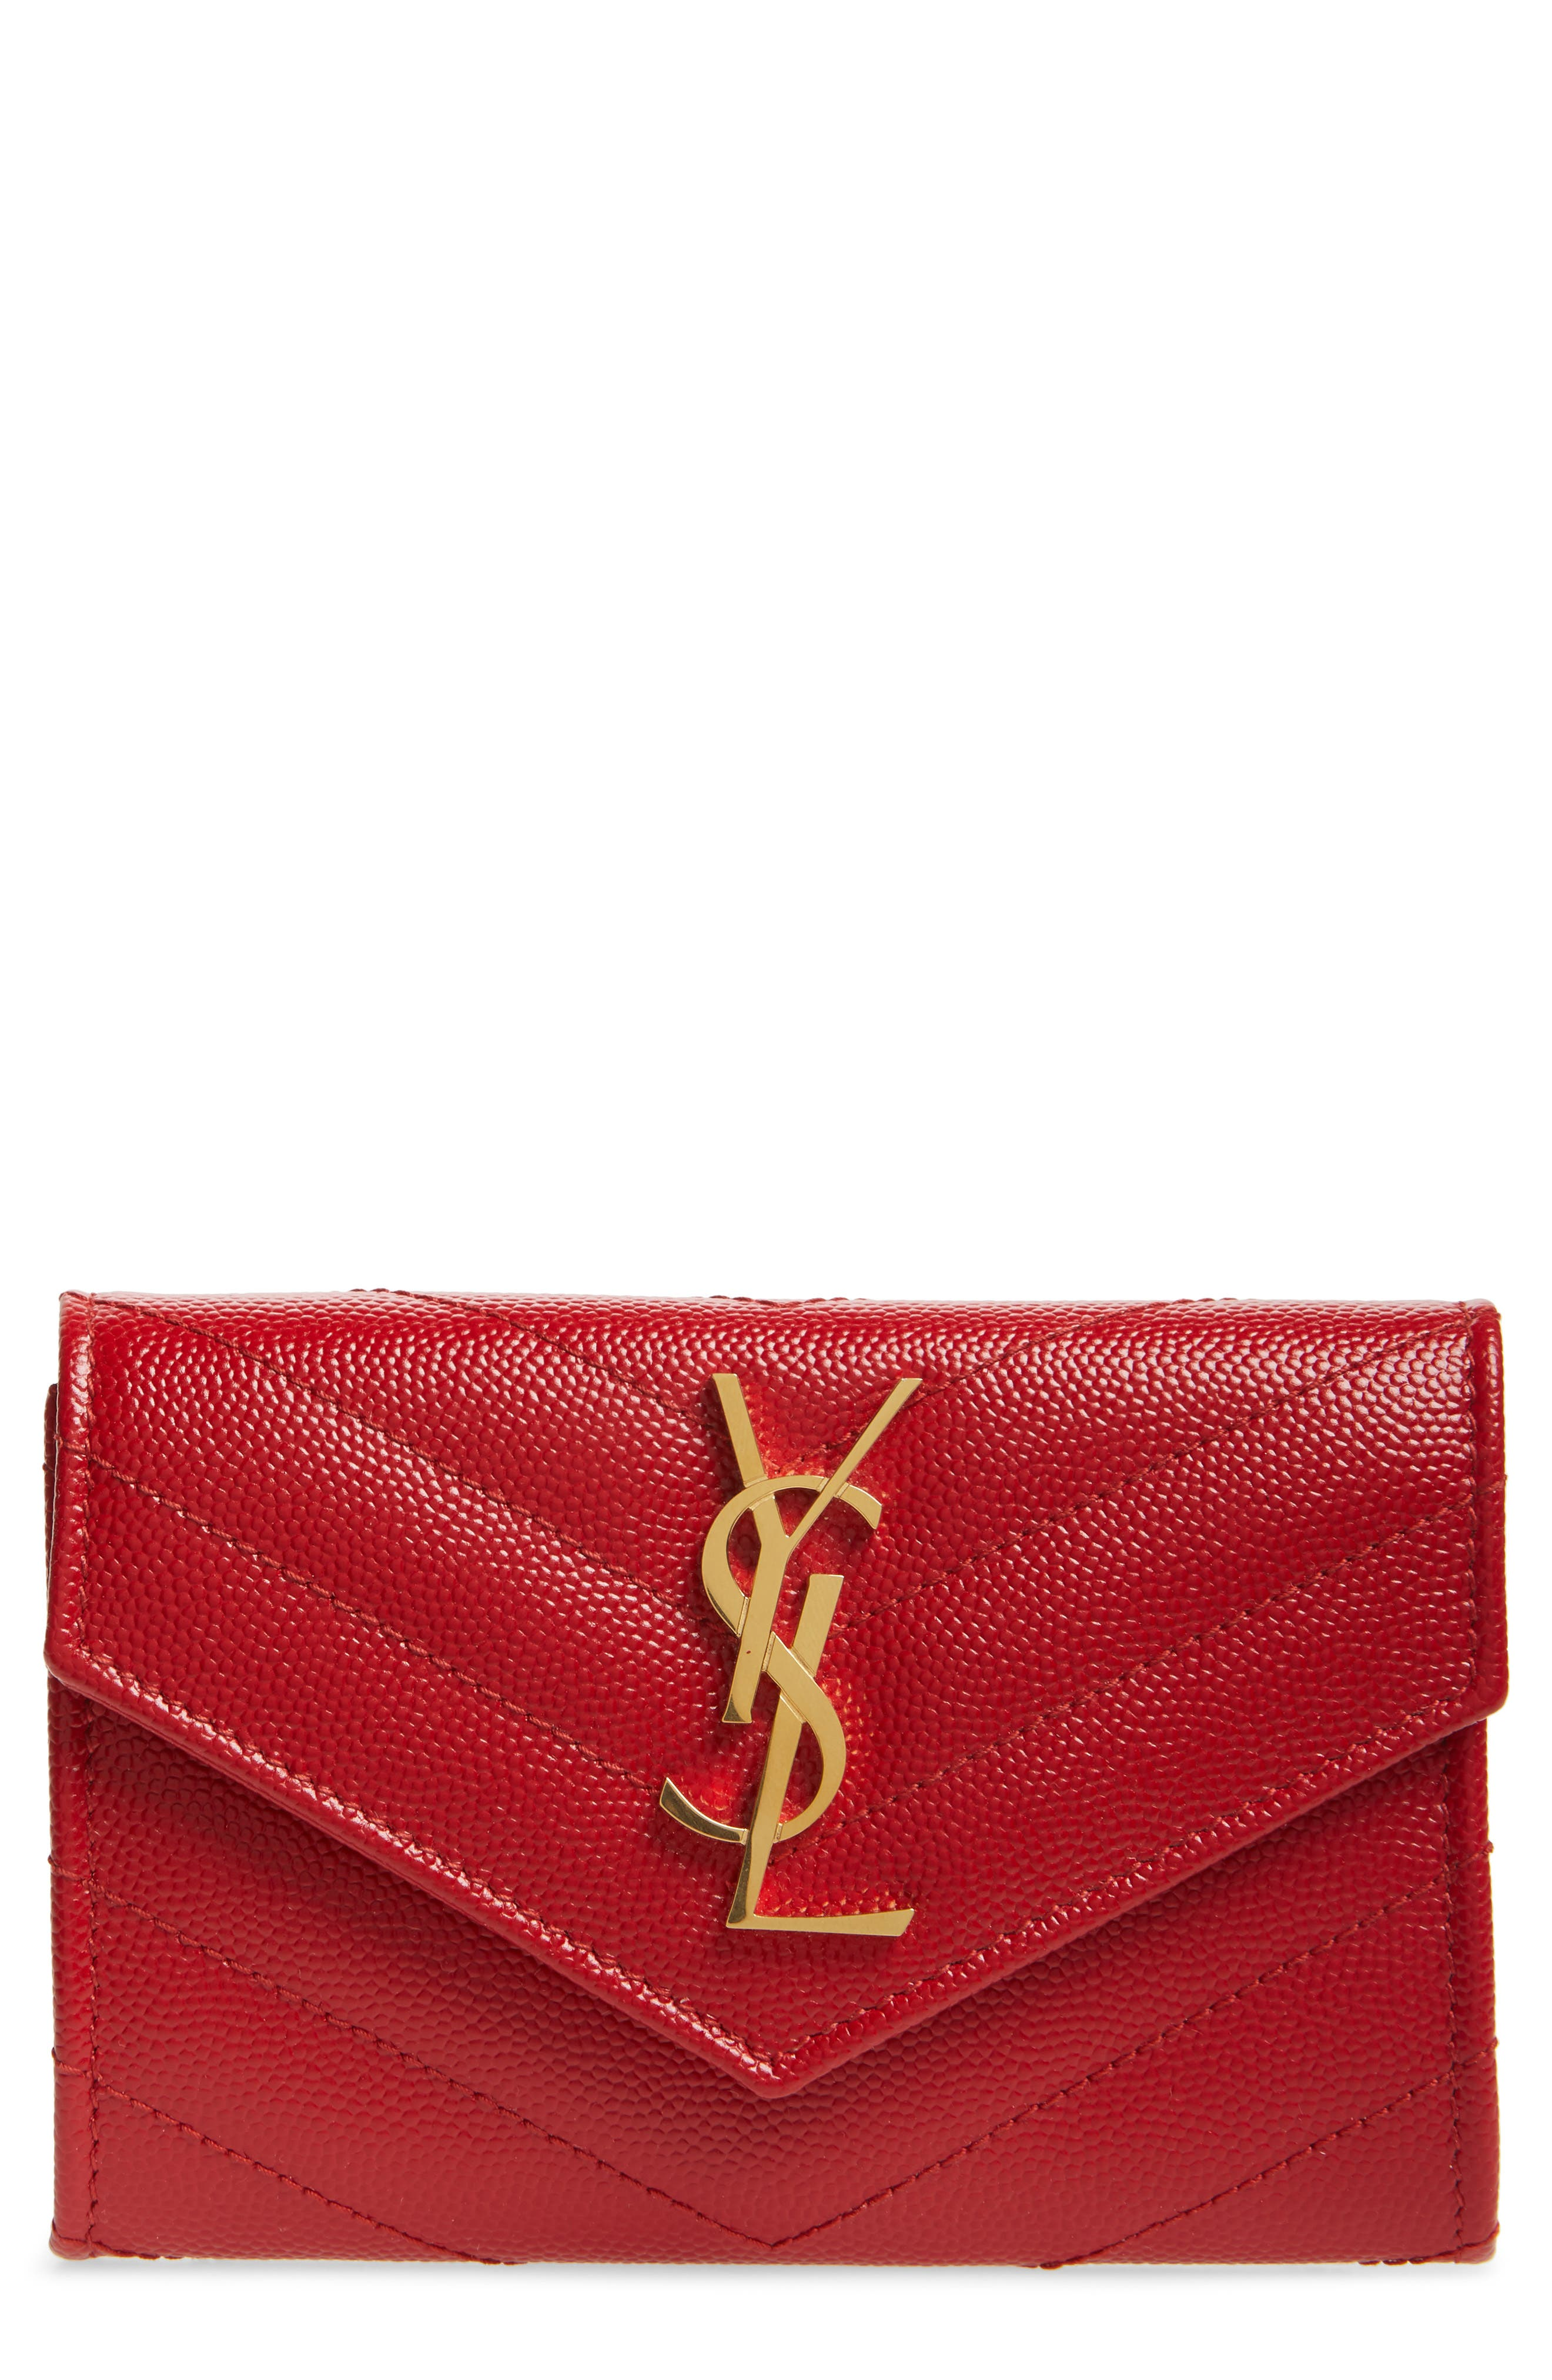 'Monogram' Quilted Leather French Wallet,                             Main thumbnail 1, color,                             BANDANA RED